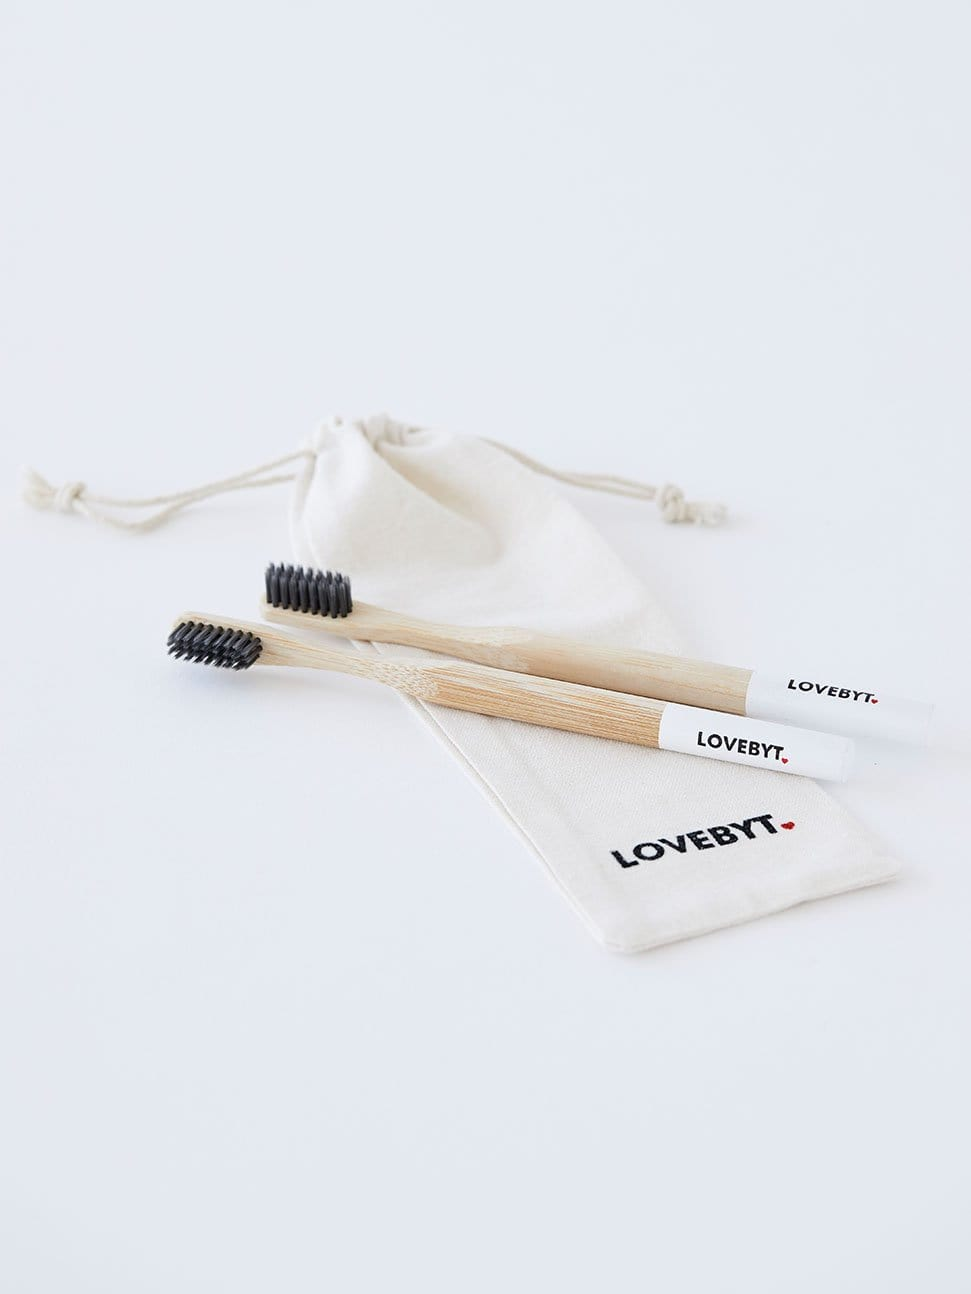 LOVEBYT BAMBOO TOOTHBRUSH - two per bag